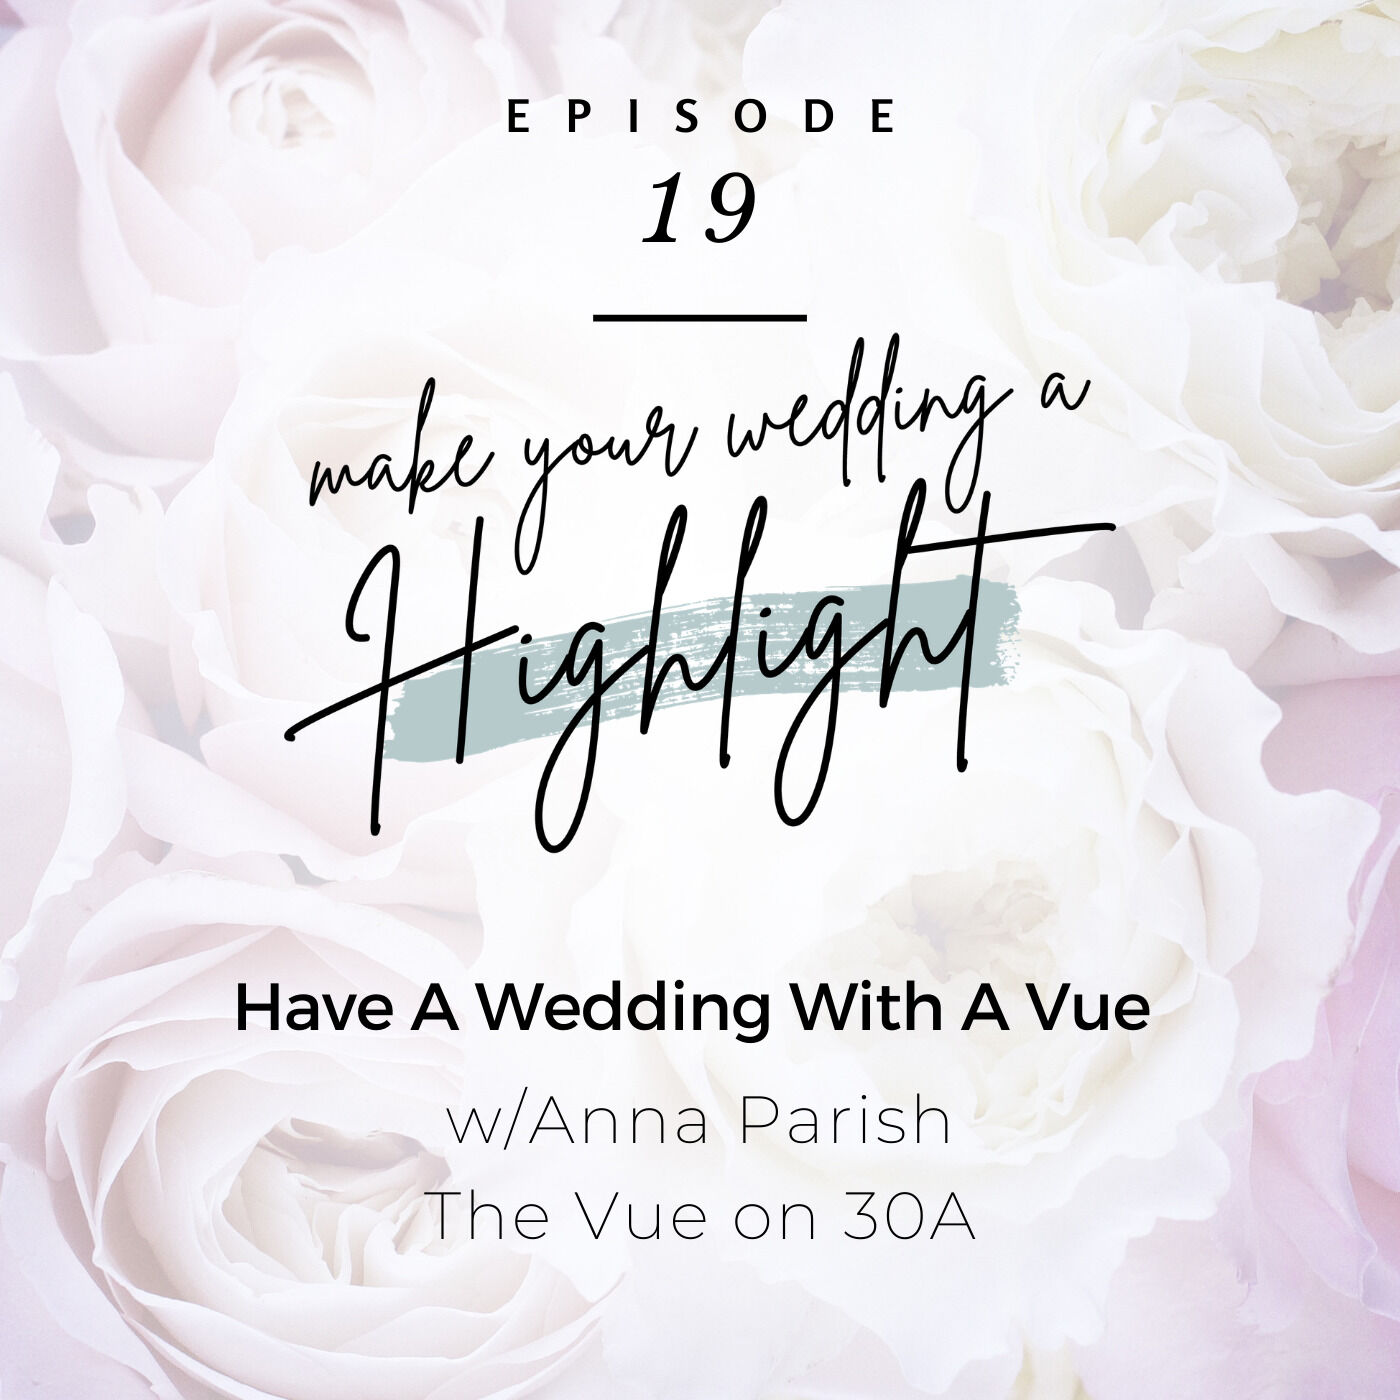 Have A Wedding With A Vue